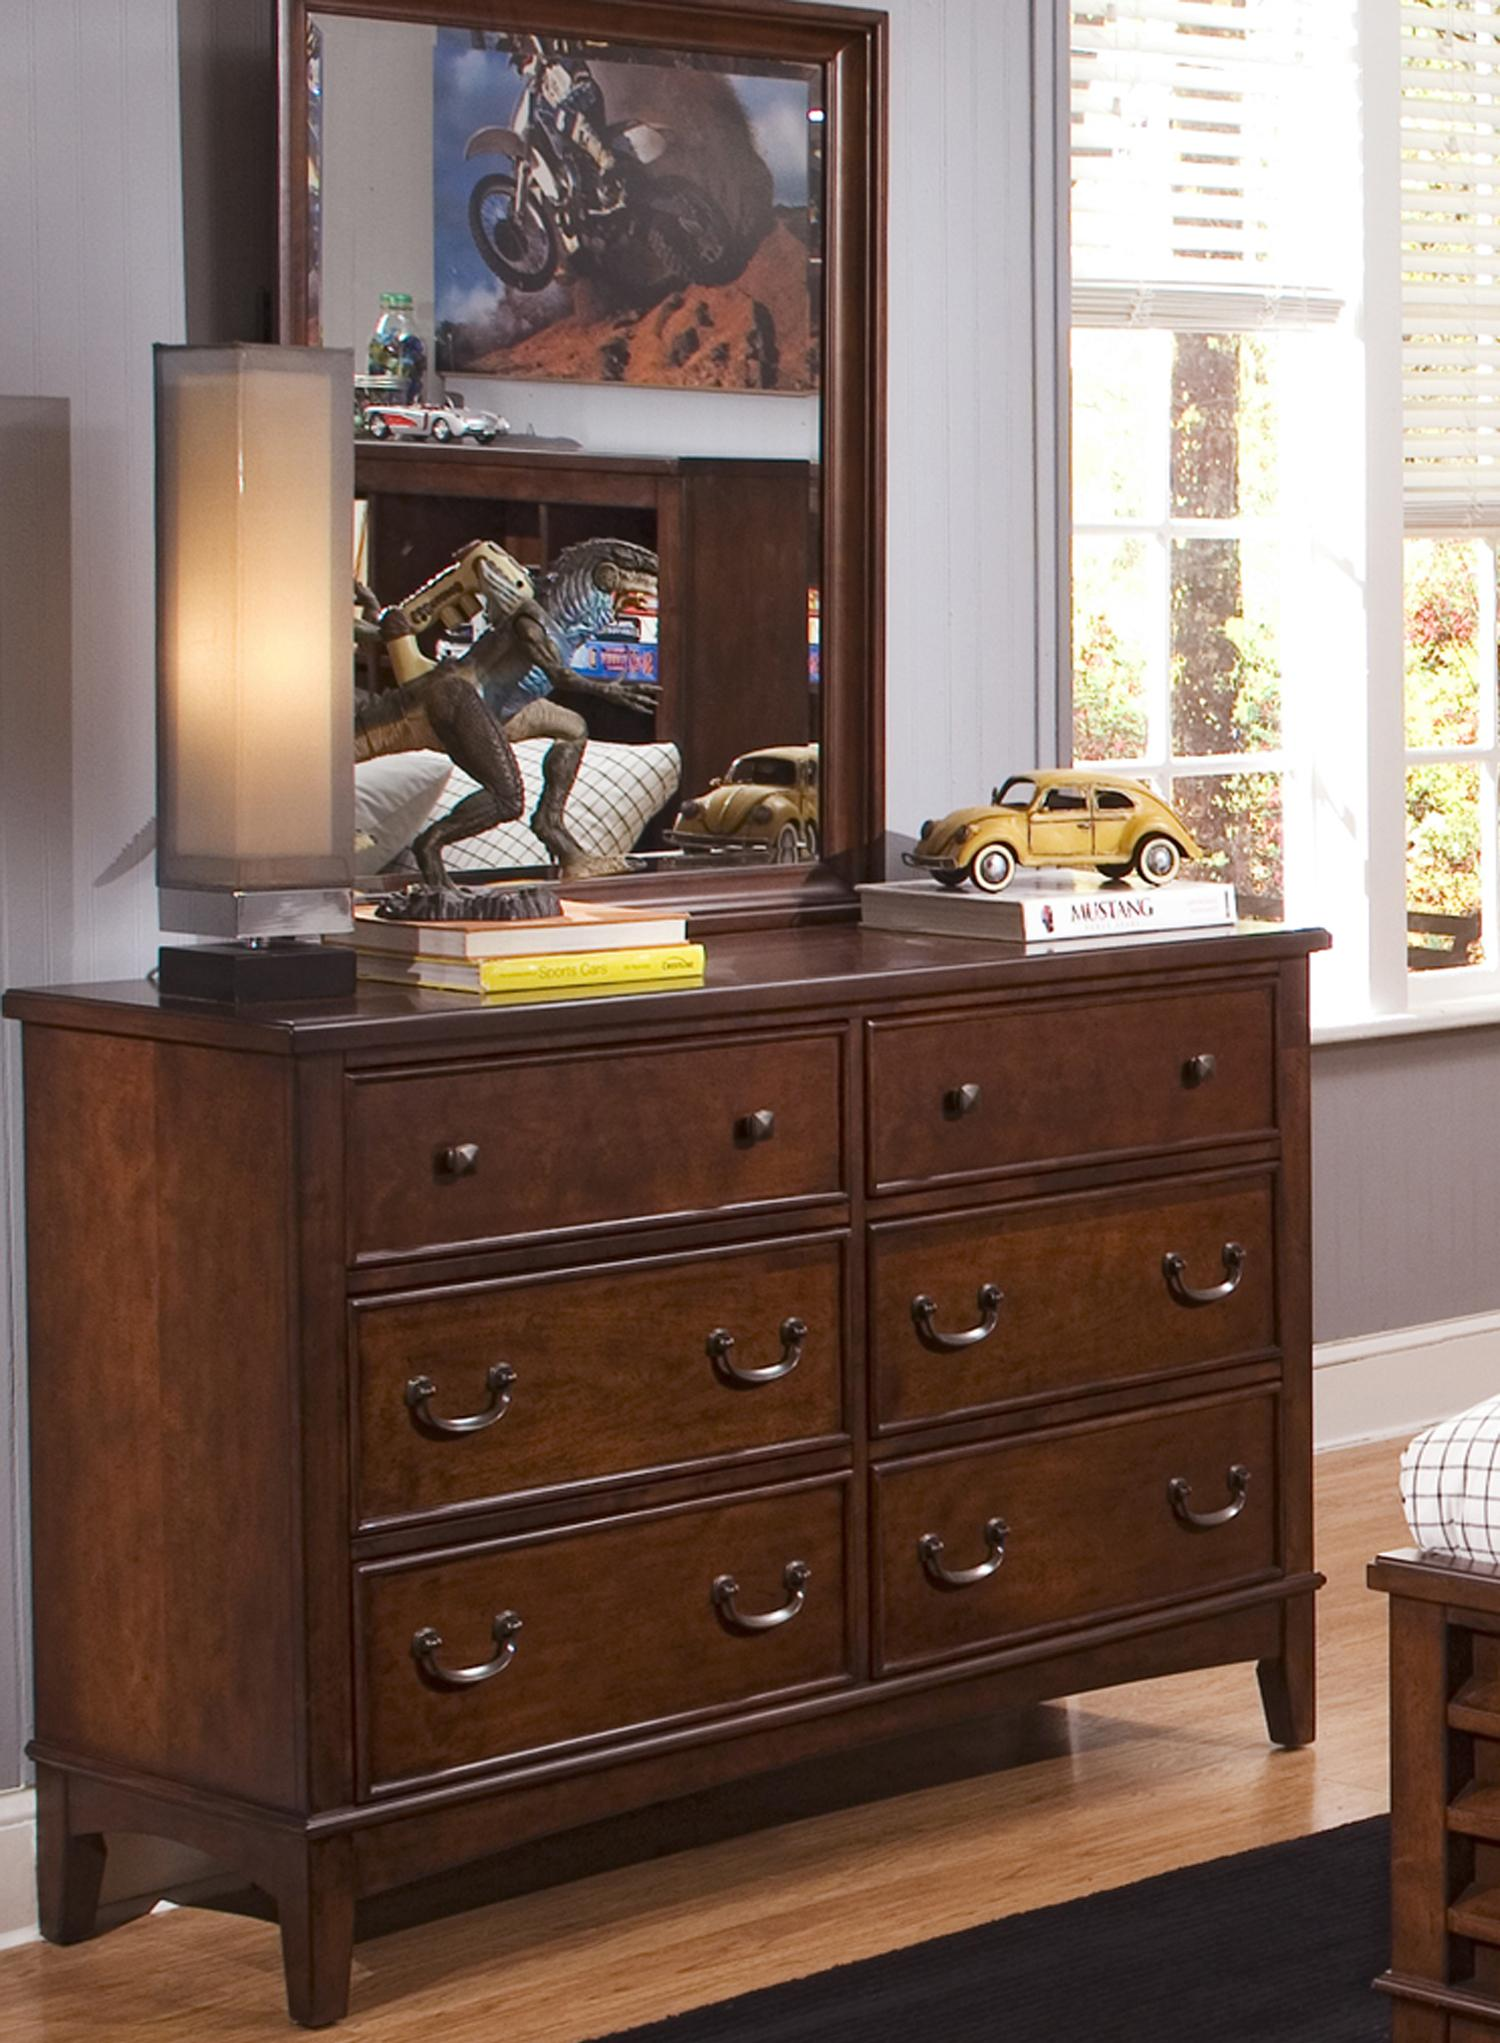 Liberty Furniture Chelsea Square Youth Dresser & Mirror Combination - Item Number: 628-YBR-SET50